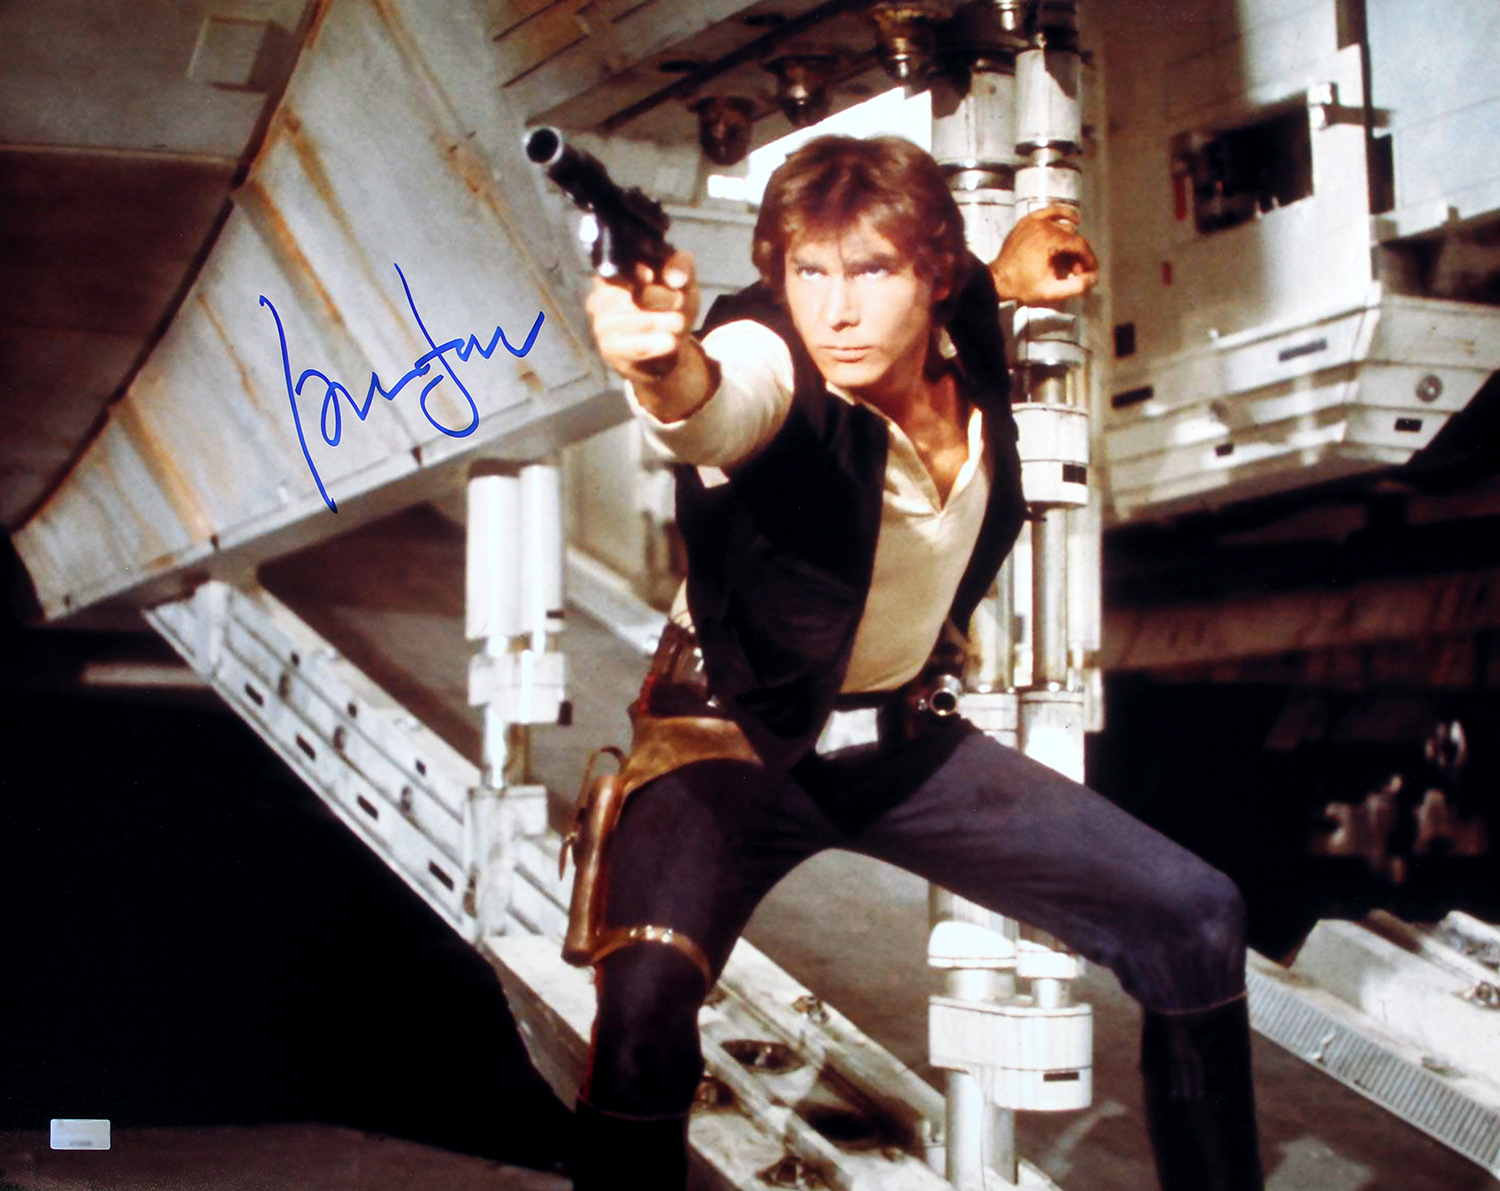 HARRISON FORD STAR WARS SIGNED 8X10 PHOTO AUTOGRAPHED RP